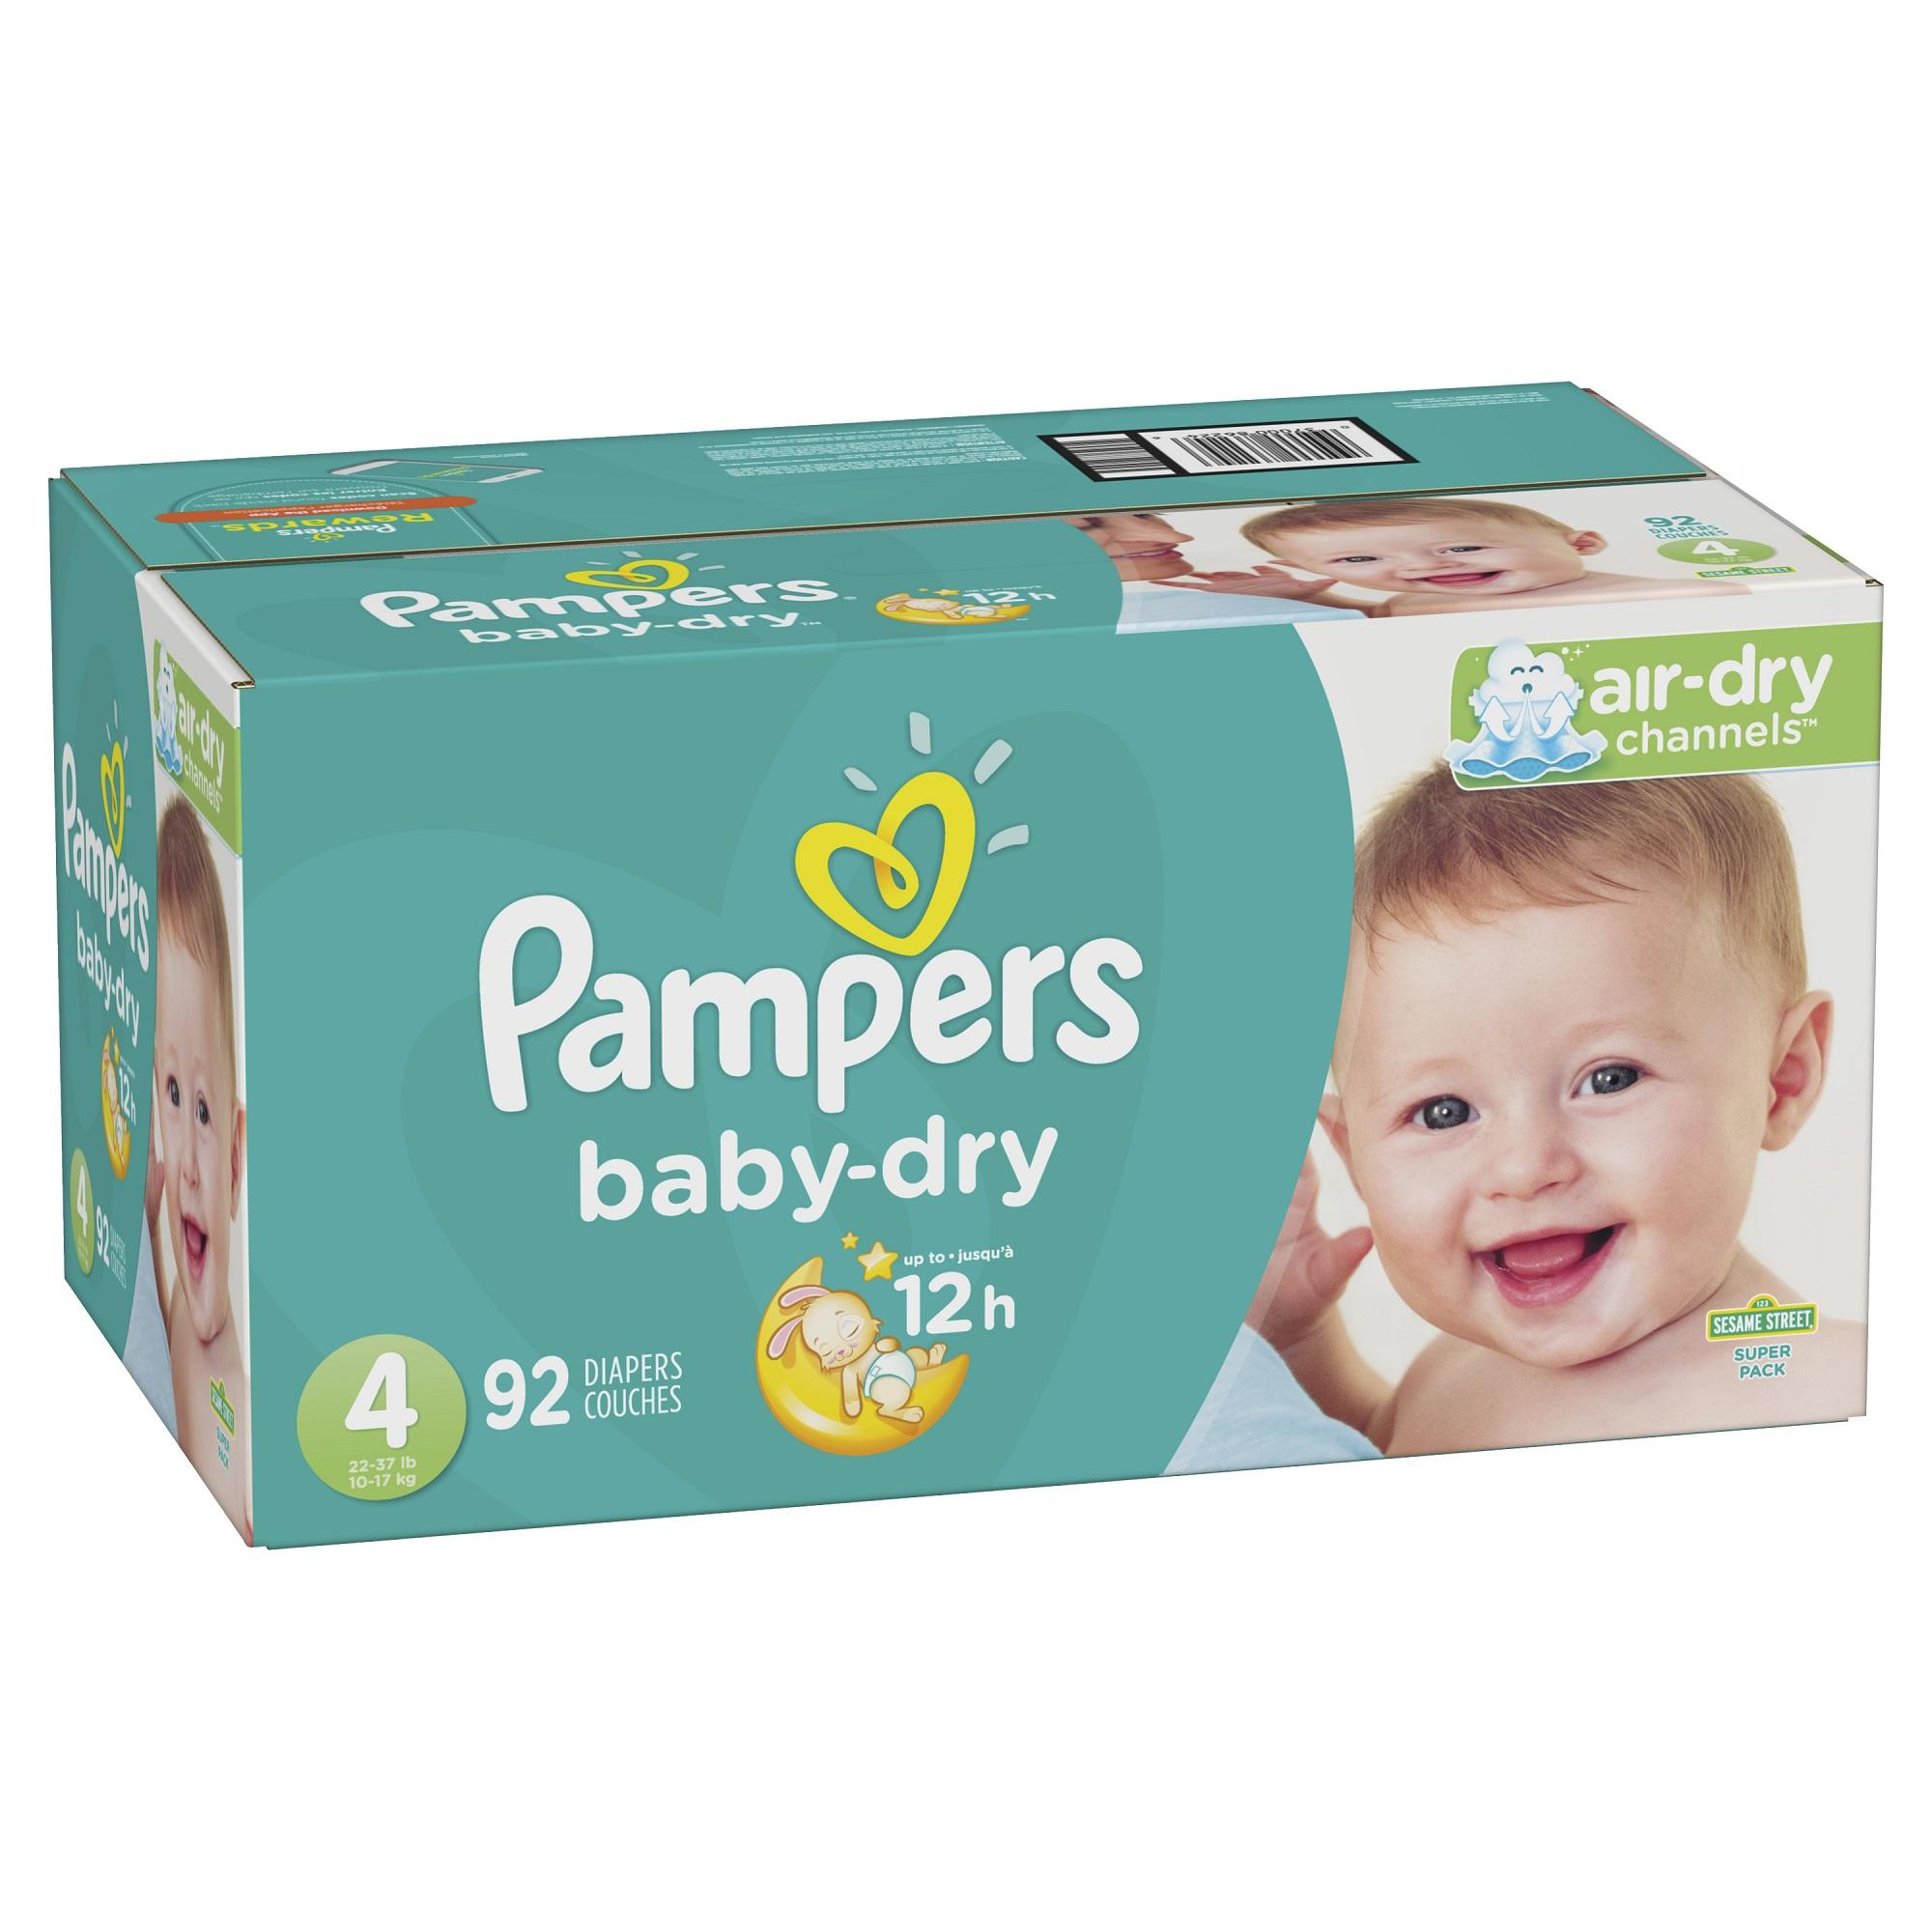 Fraldas Pampers Baby-Dry Proteção Extra, Tamanho 4, 92 <span class=keywords><strong>ct</strong></span> (Whatsapp + 31687905625)